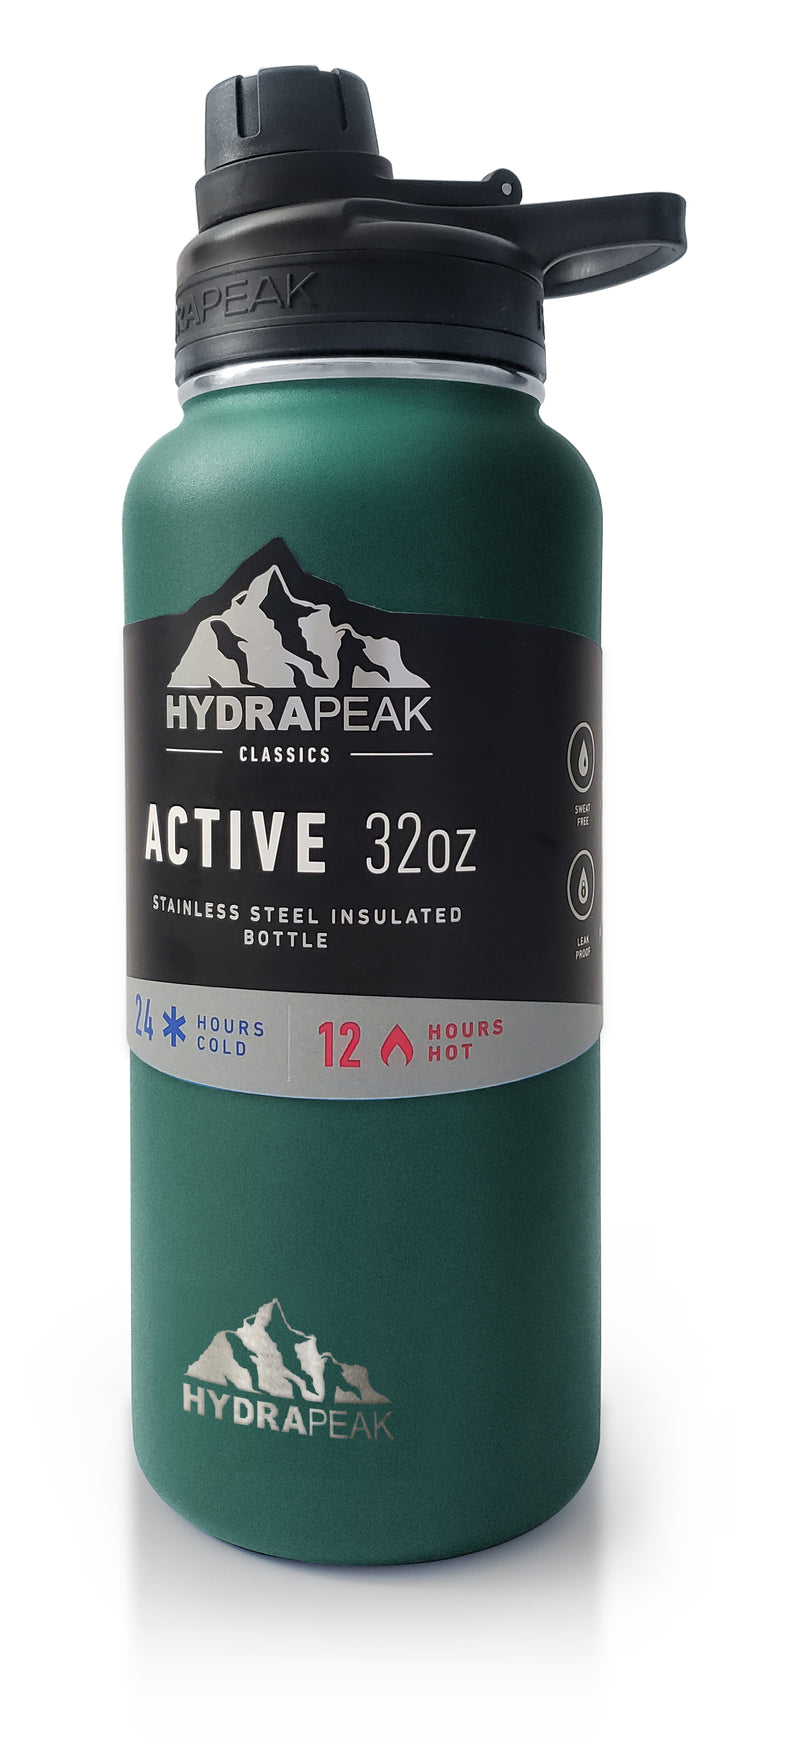 Hydrapeak 32oz Vacuum Insulated Stainless Steel Water Bottle - Aqua